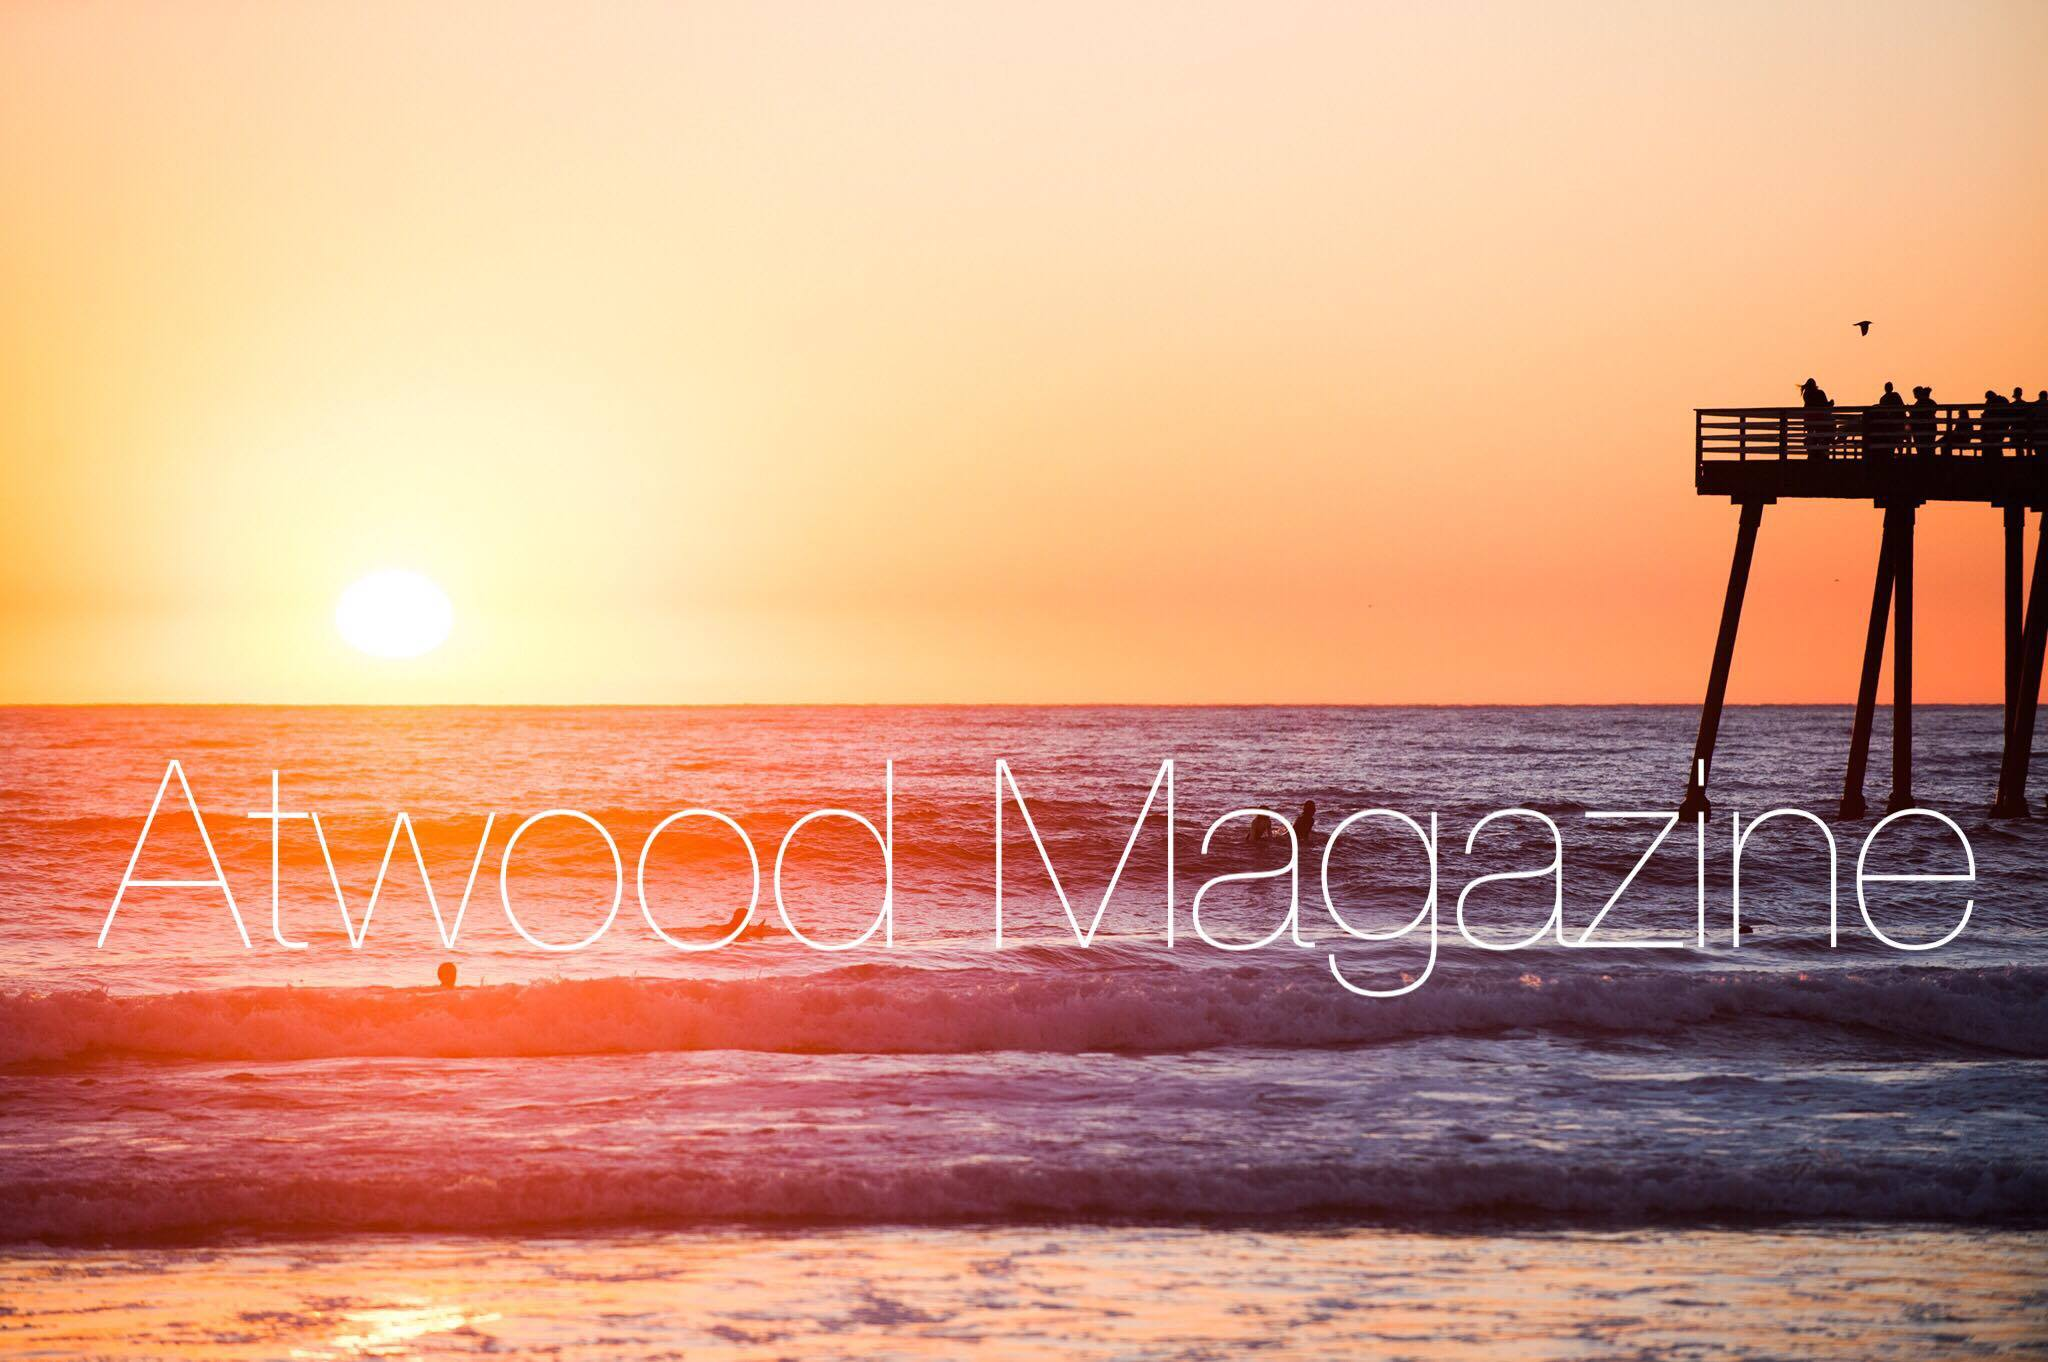 Atwood Magazine Summer 2017 playlist